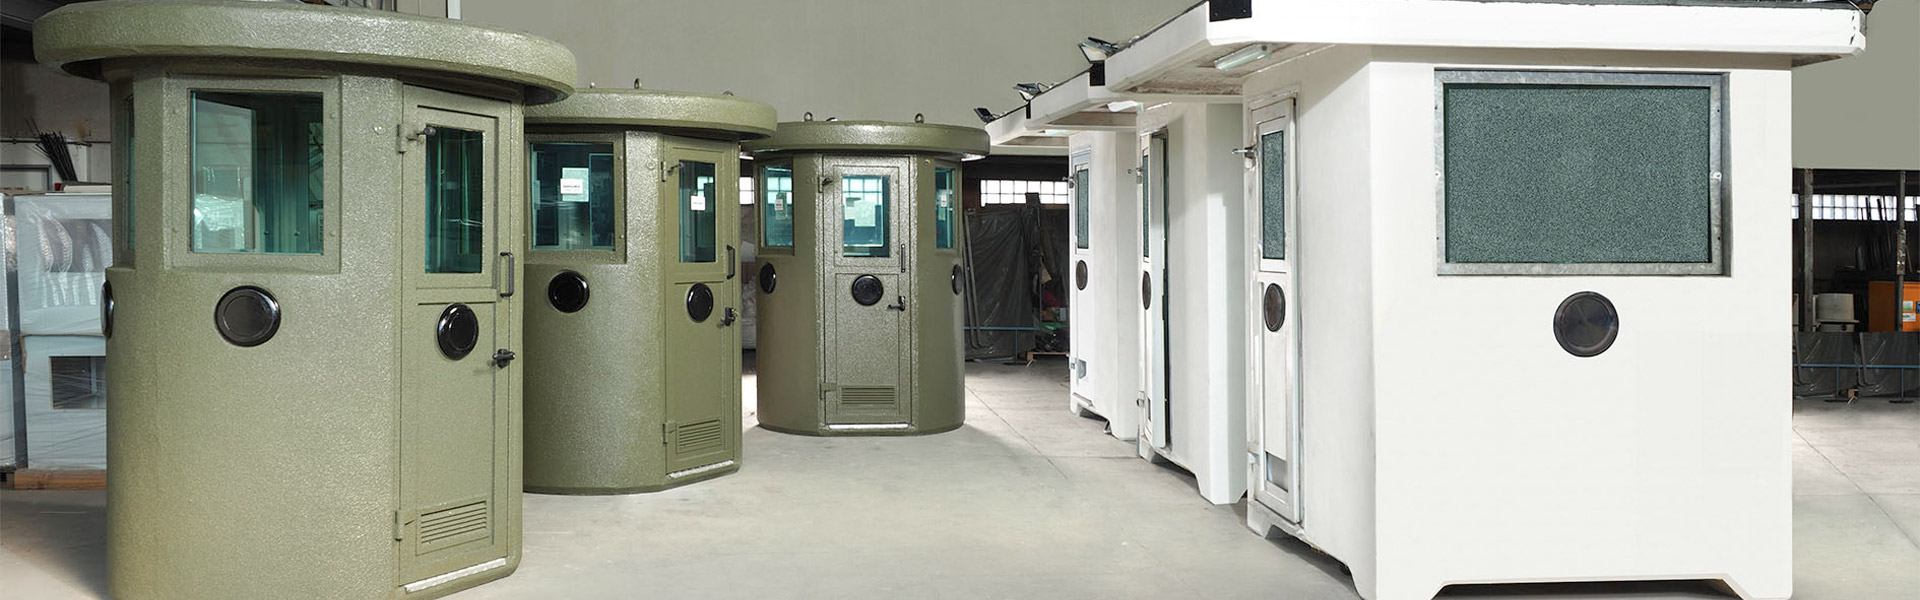 E.T.E.M. manifactures guard booths in steel and in reinforced concrete